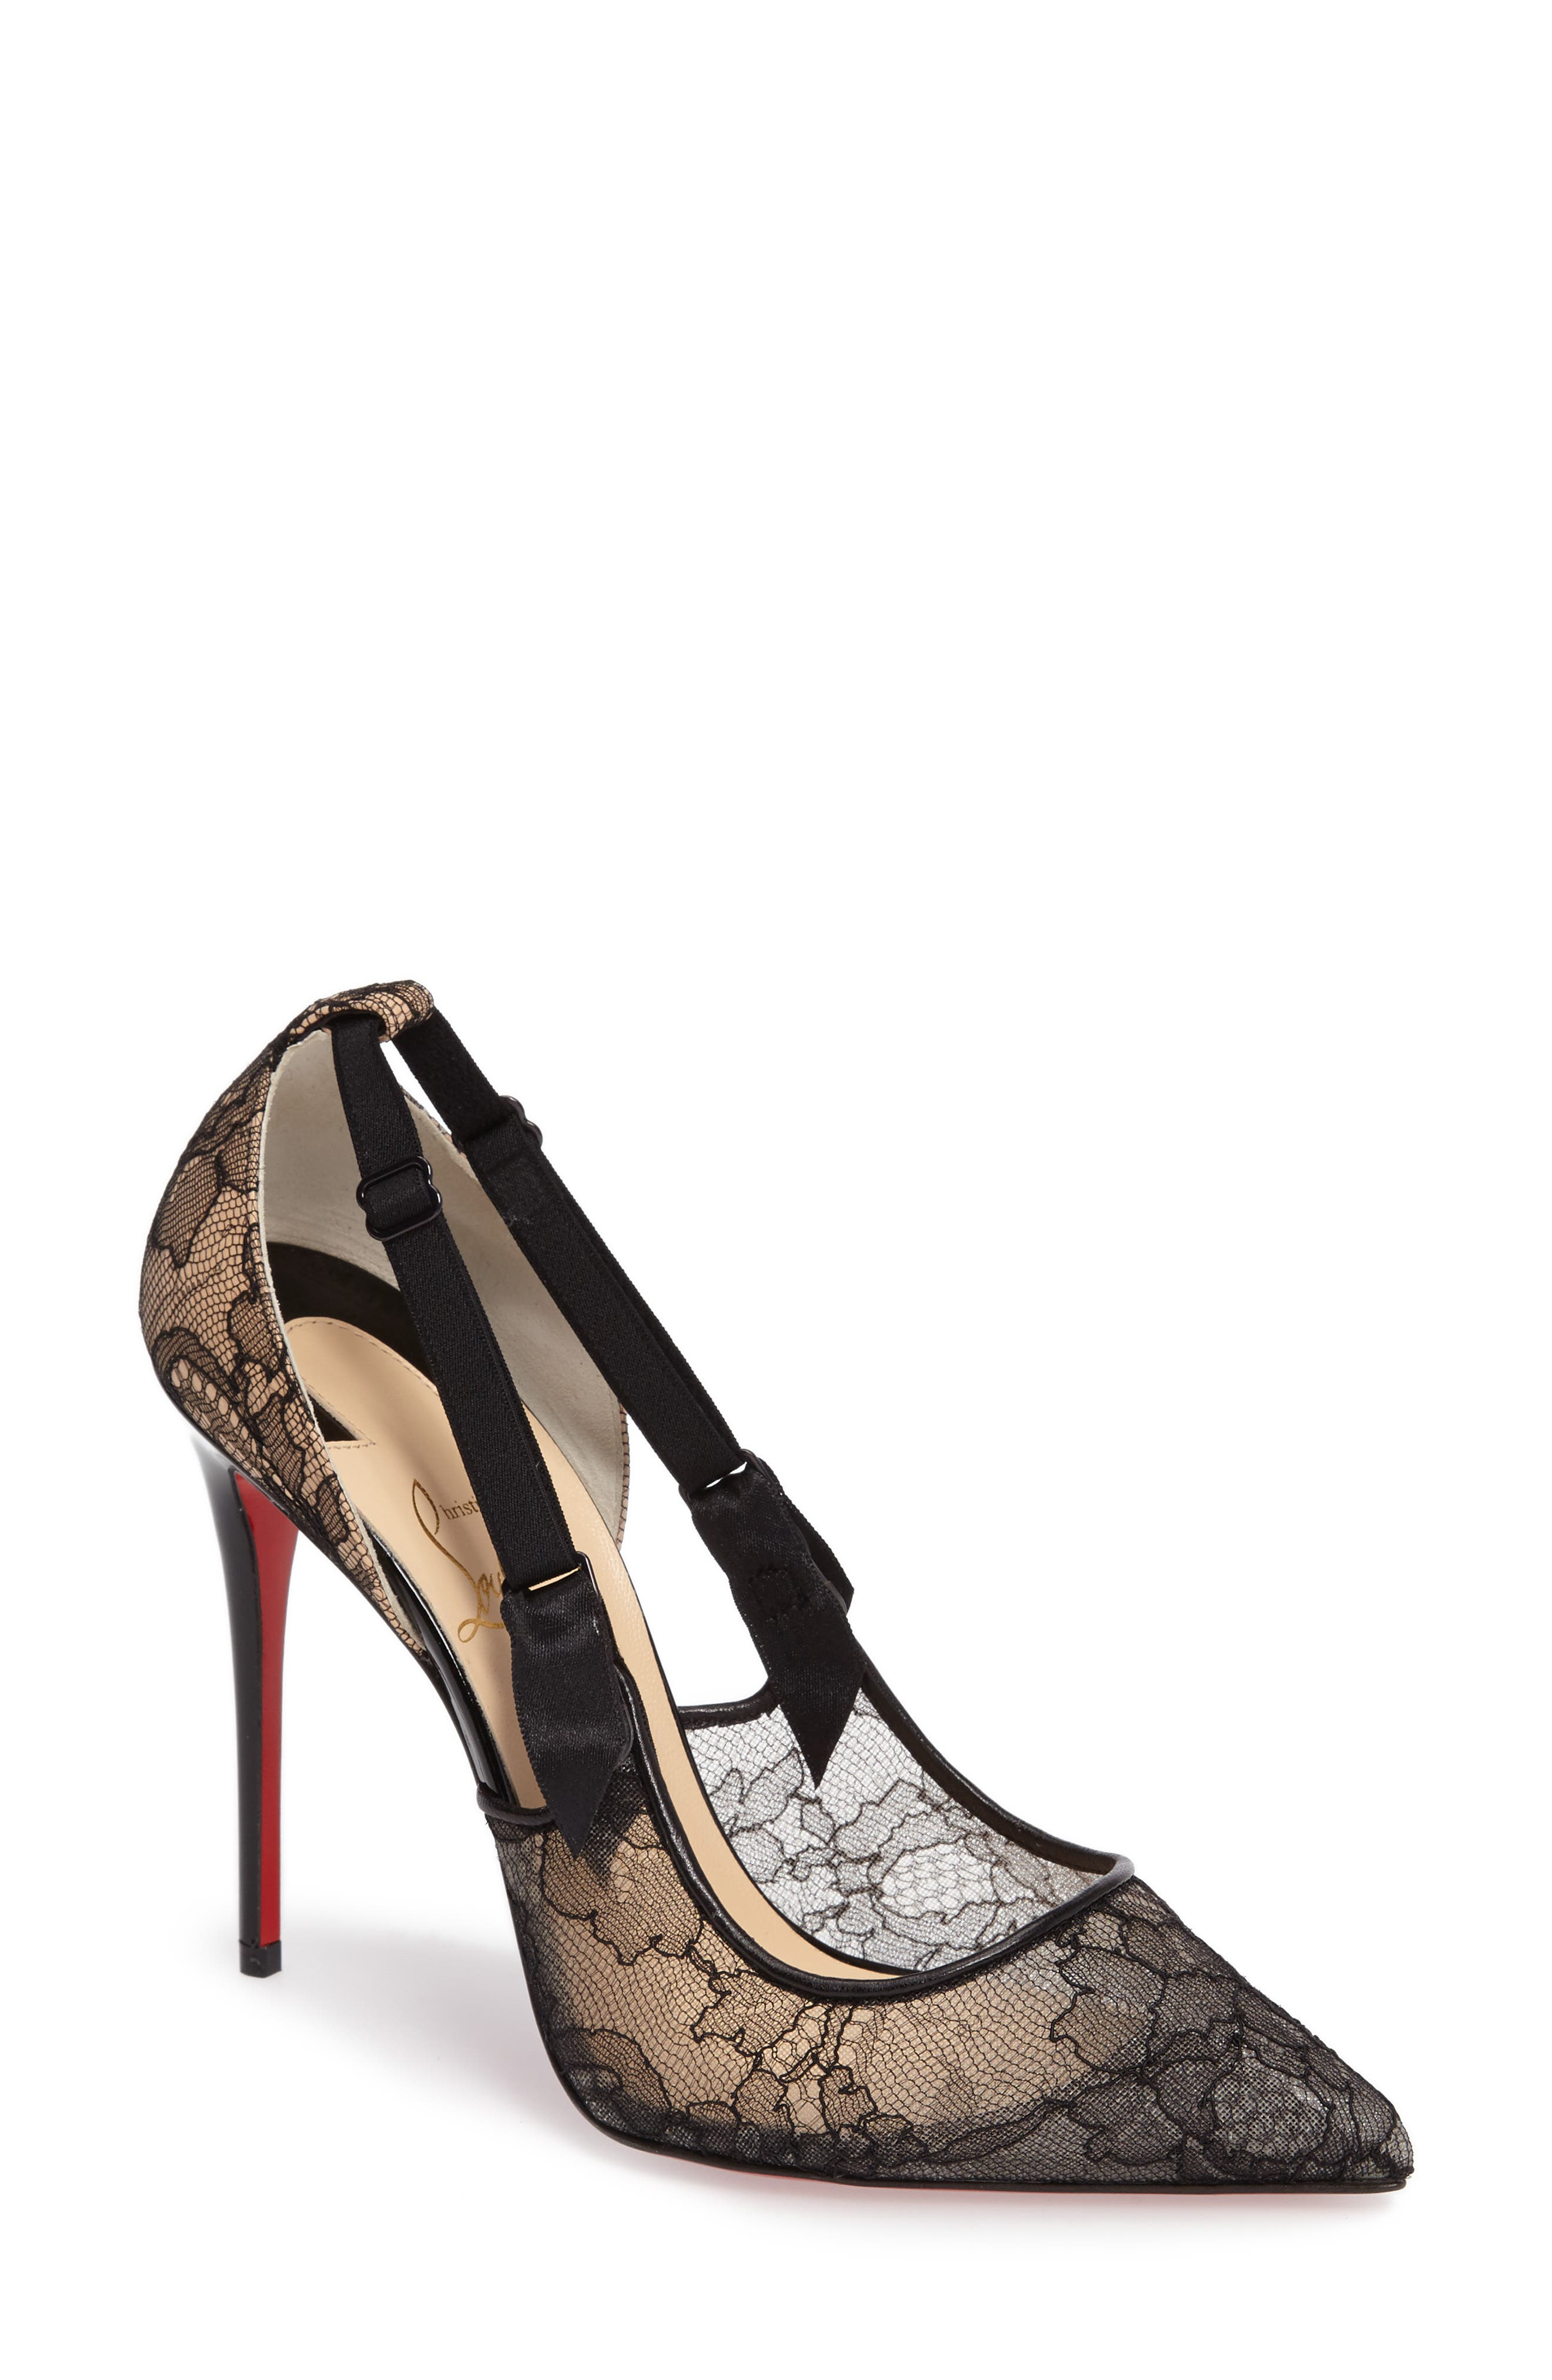 Main Image - Christian Louboutin Hot Jeanbi Pump (Women)